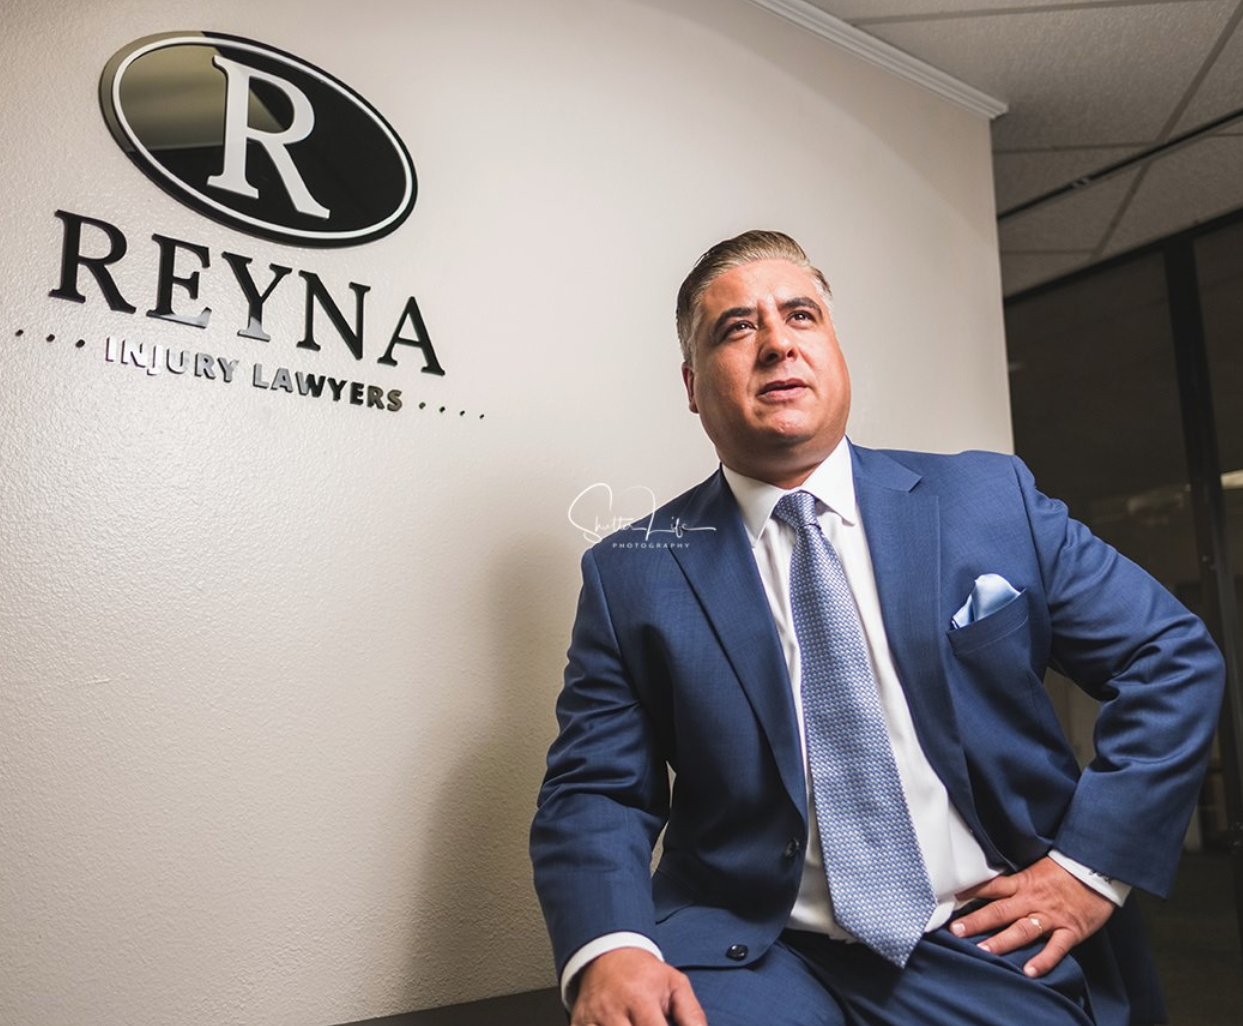 Reyna Injury Lawyers image 2